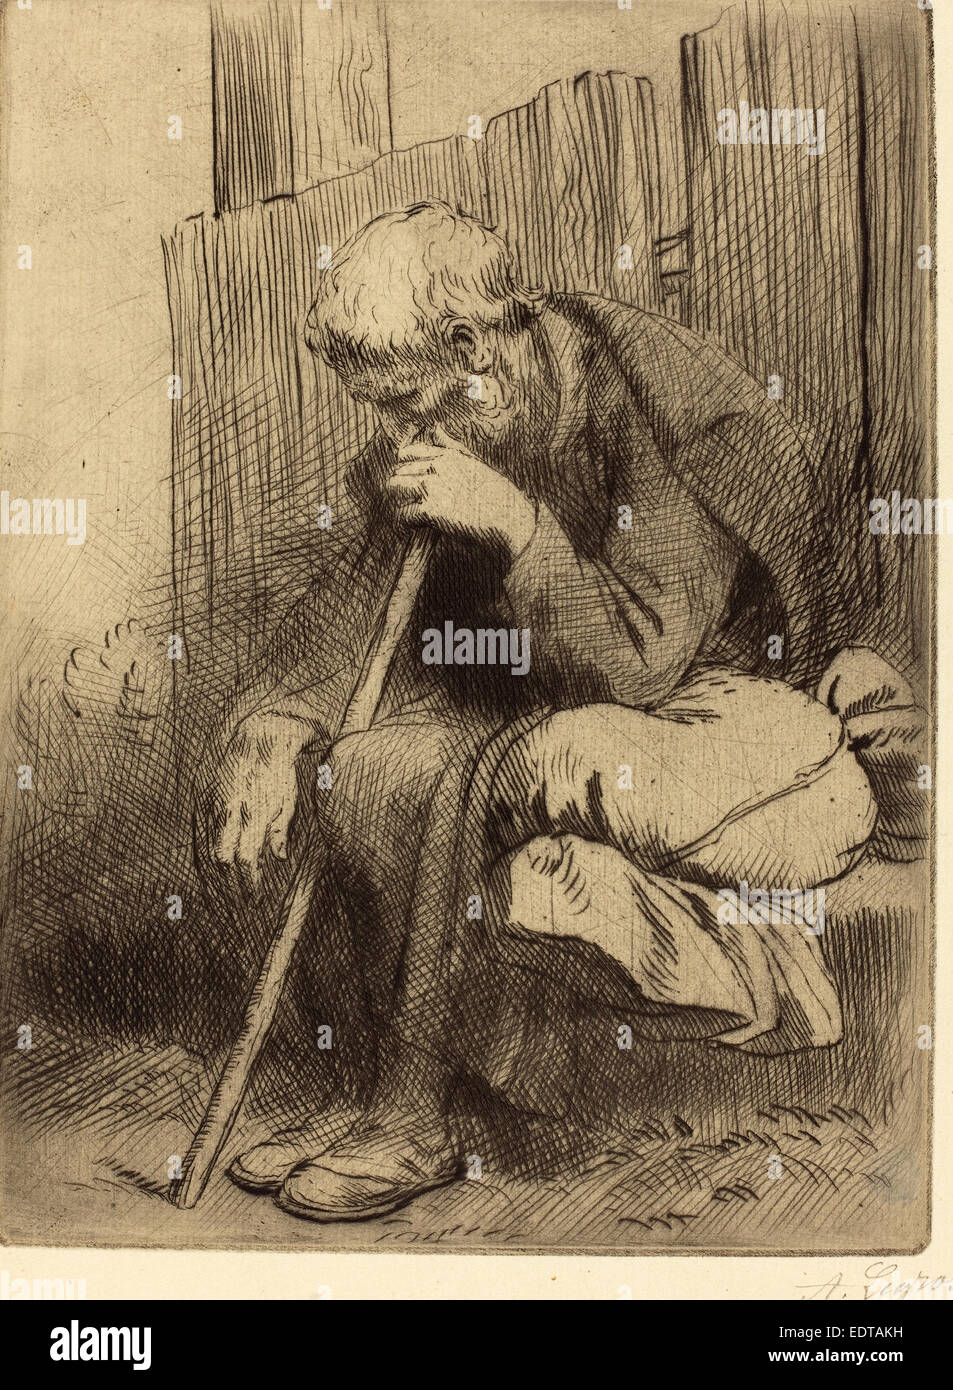 Alphonse Legros, Thinker (Le penseur), French, 1837 - 1911, etching and drypoint - Stock Image